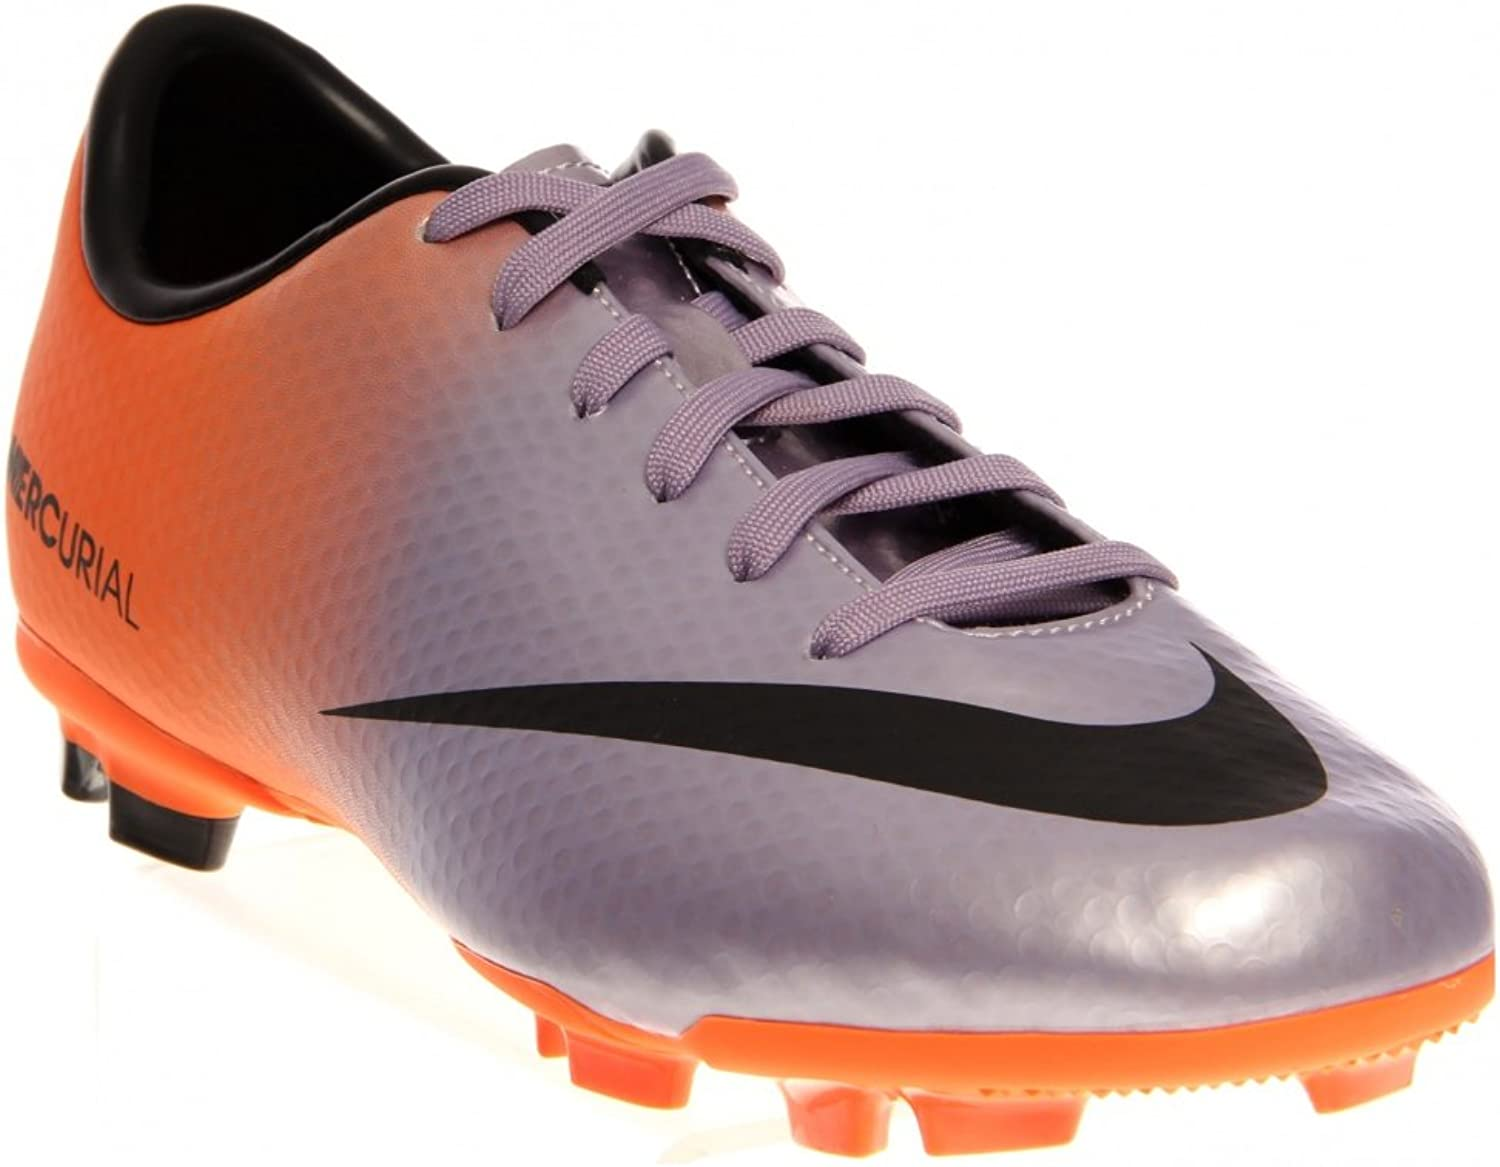 NIKE Mercurial Victory IV FG Junior Football Boots, lila lila lila  orange, UK4  kundens första rykte först